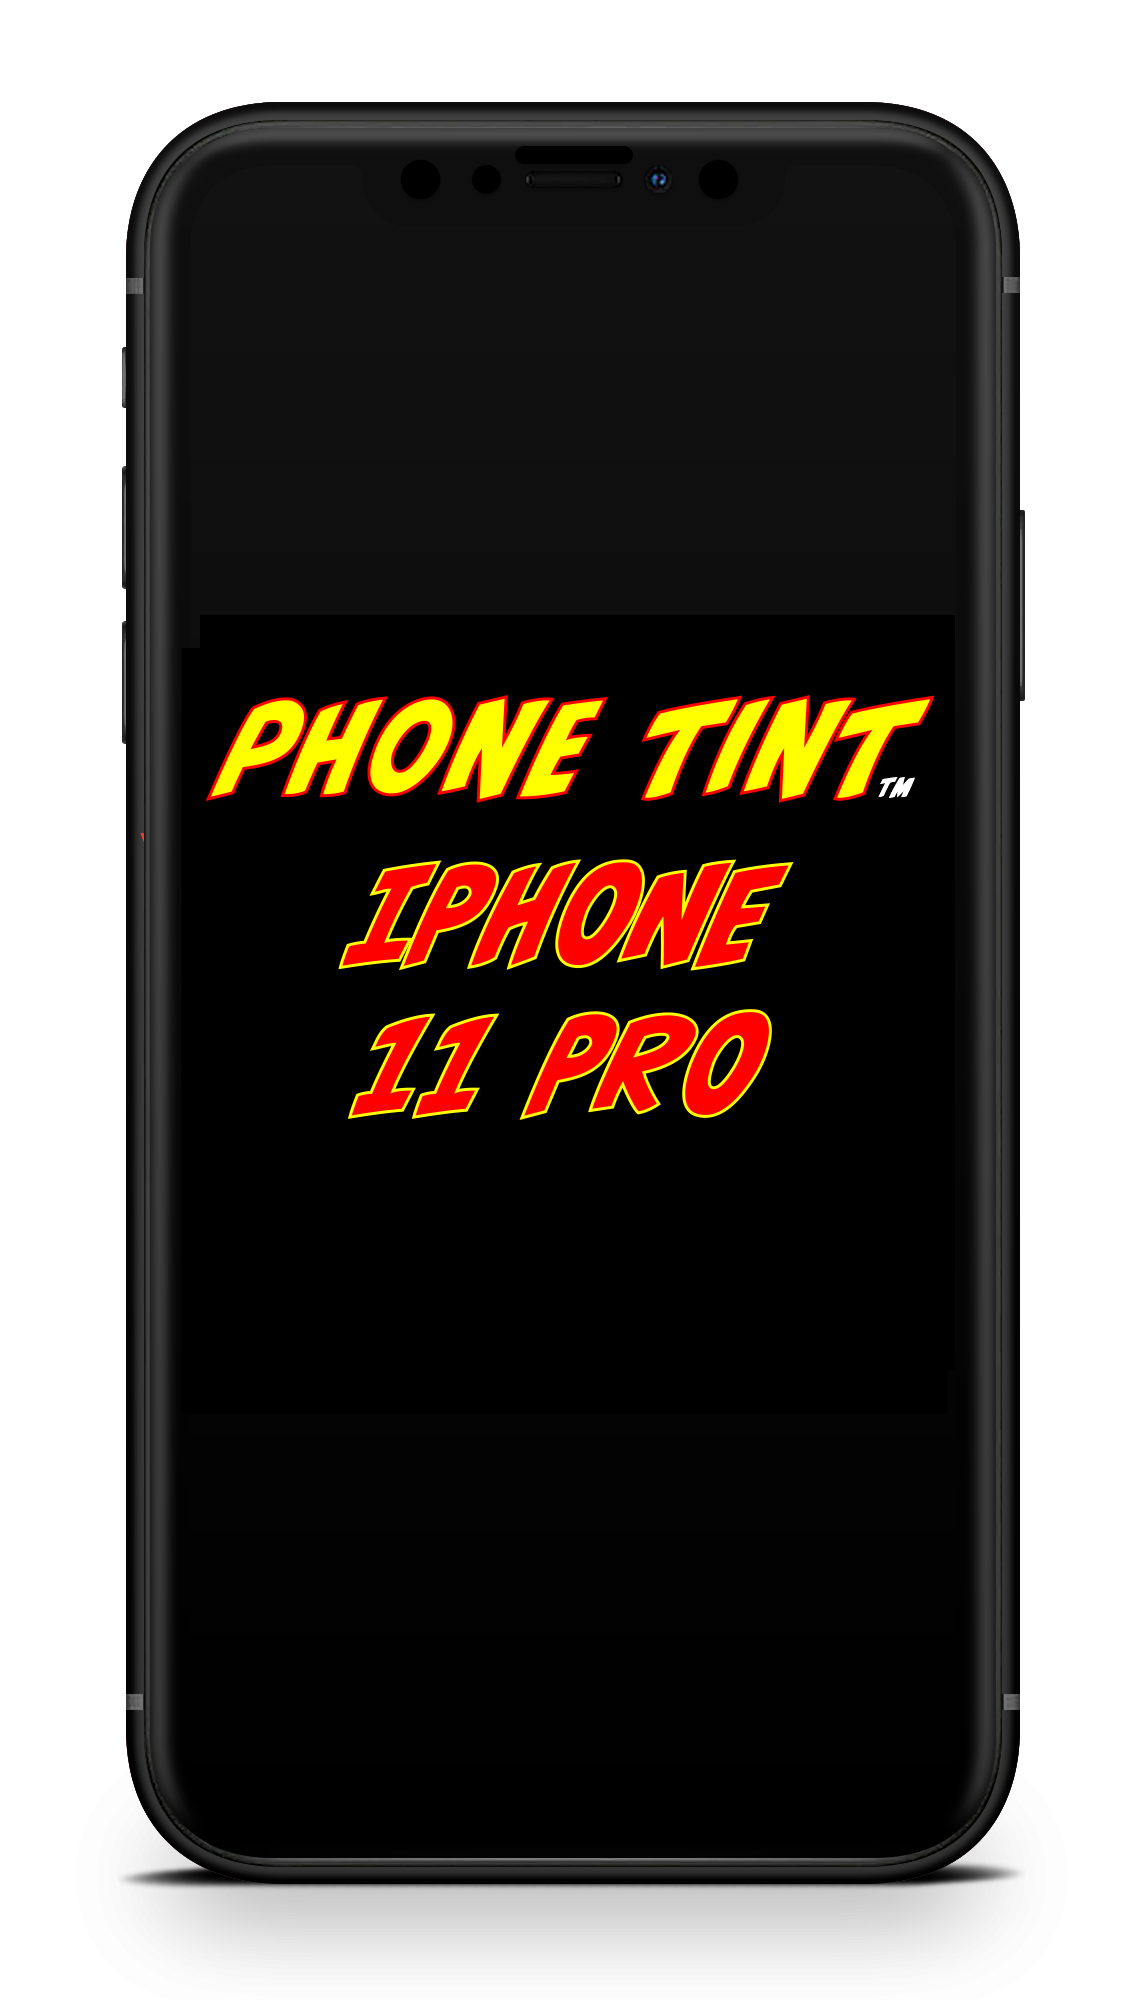 Iphone 11 pro phone tint privacy edge to edge tempered glass screen protector. SKINZ Edmonton